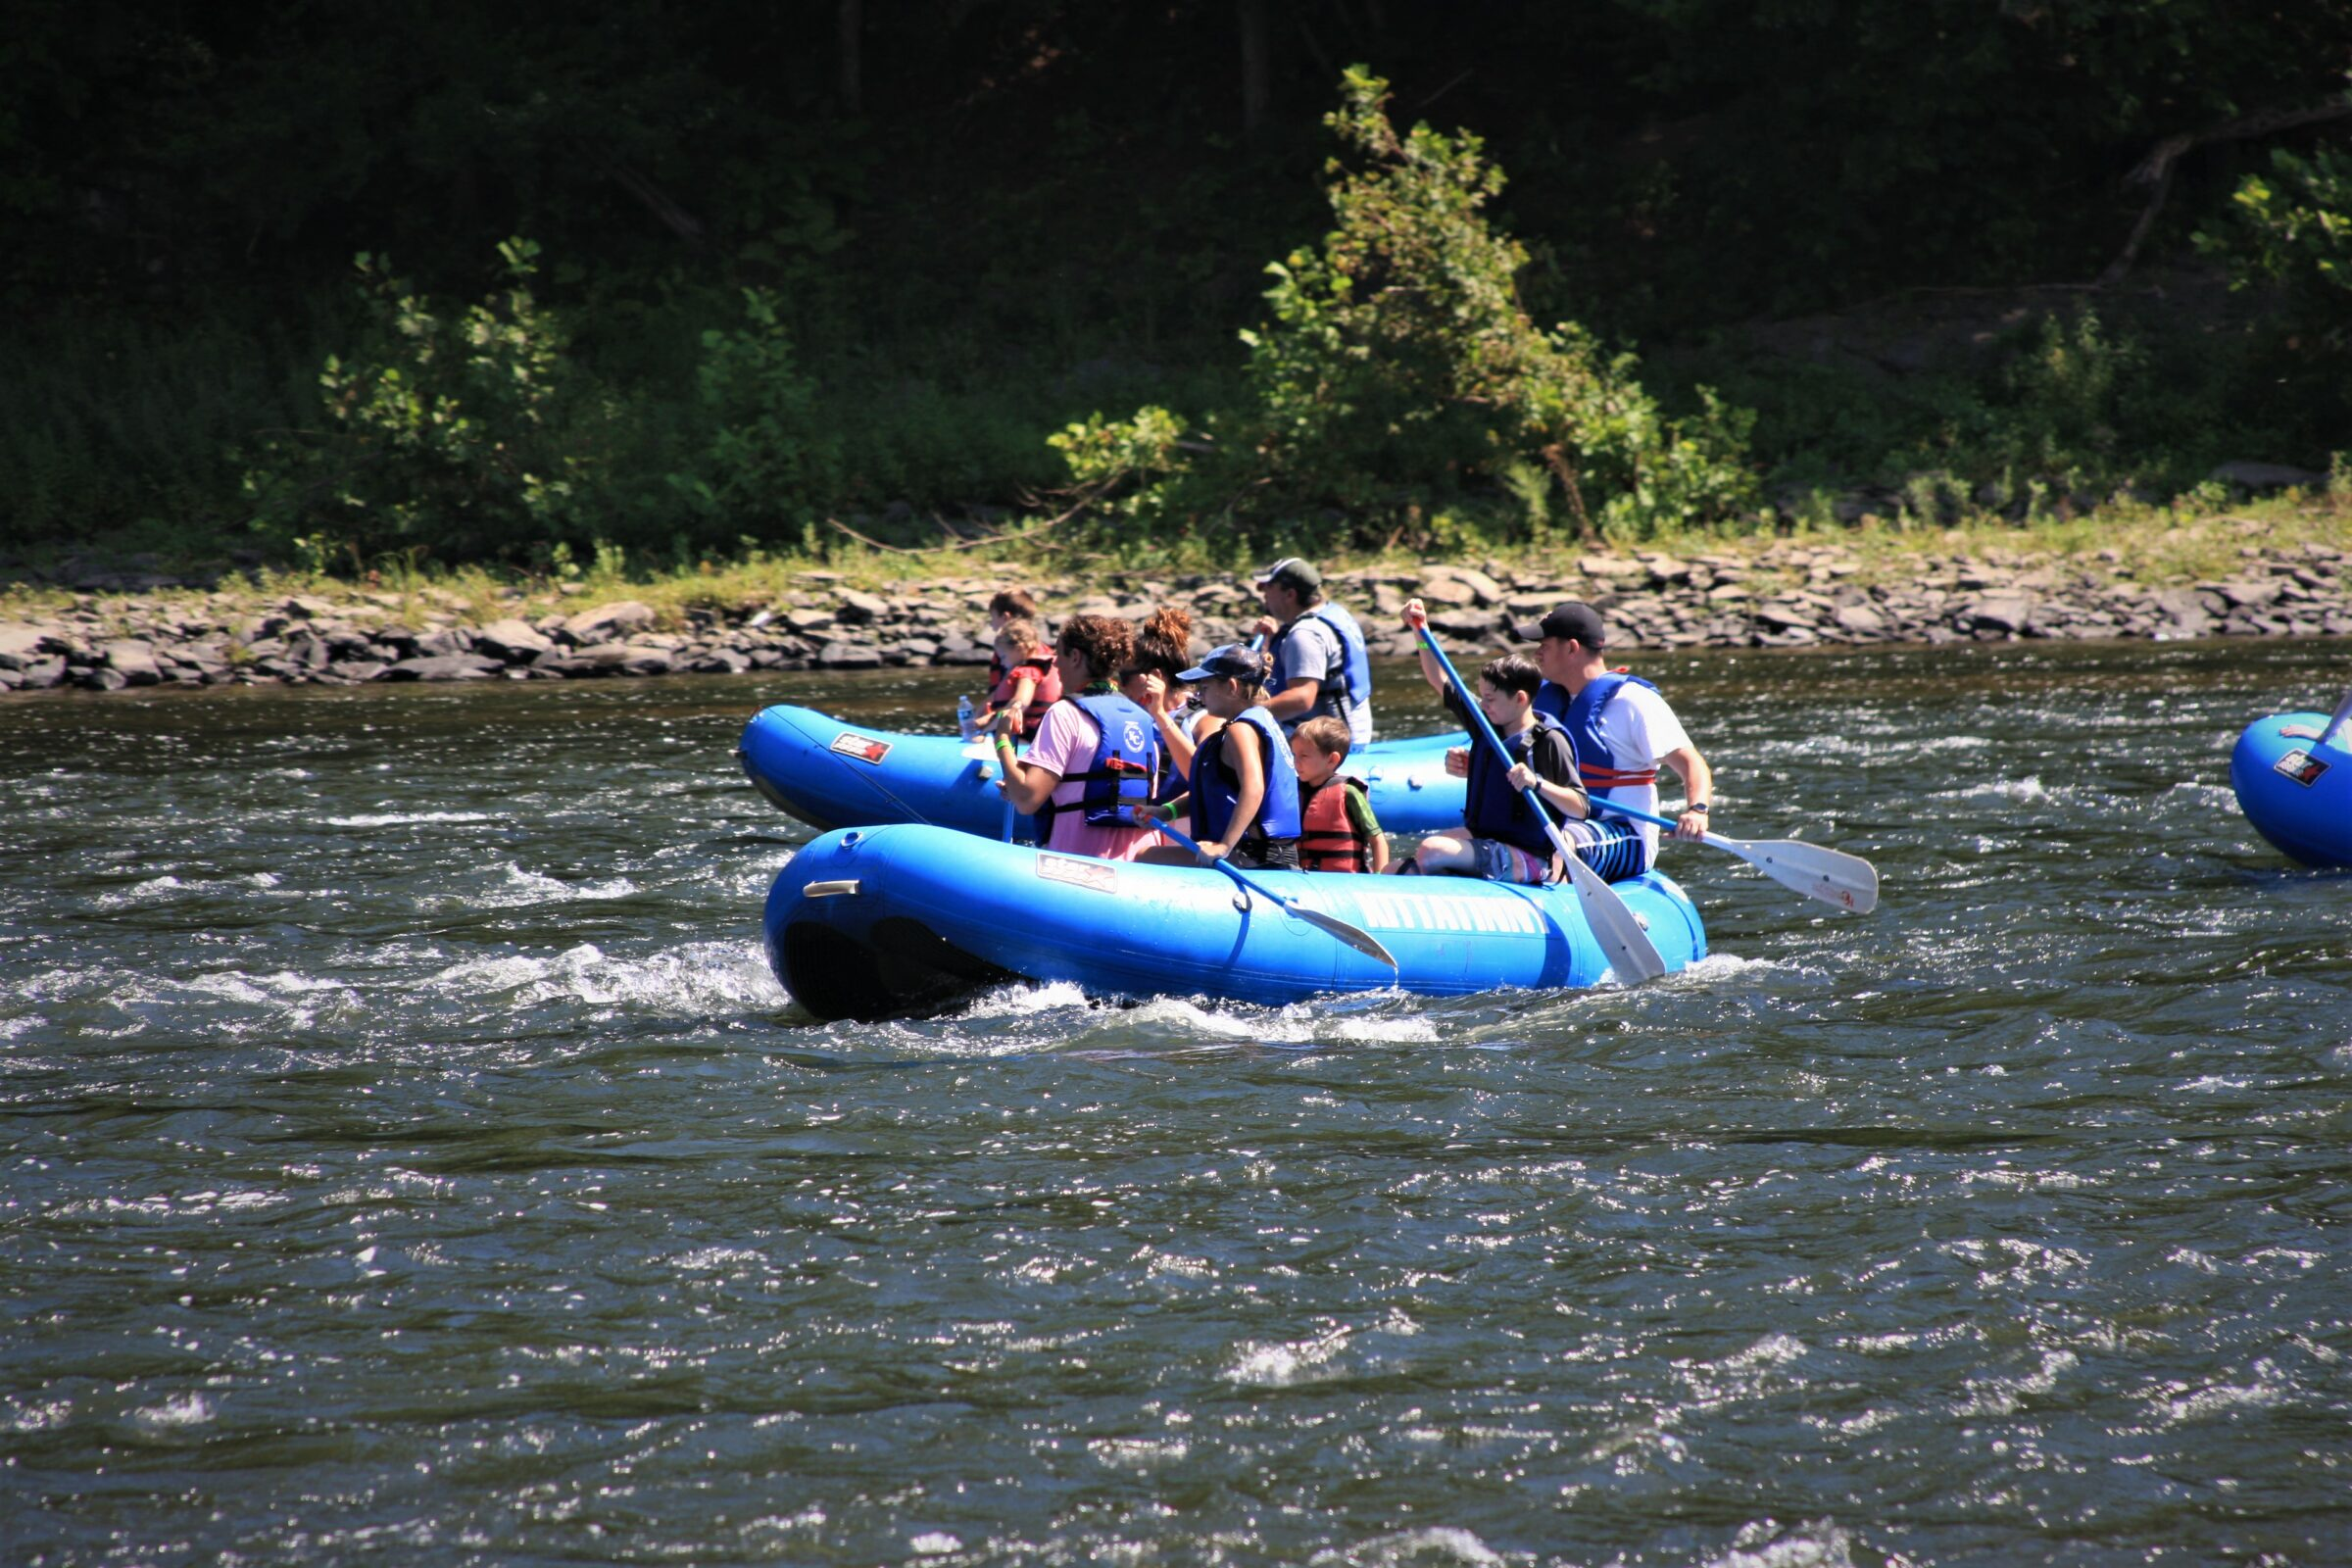 Boaters enjoying a rafting trip while wearing their life jackets.